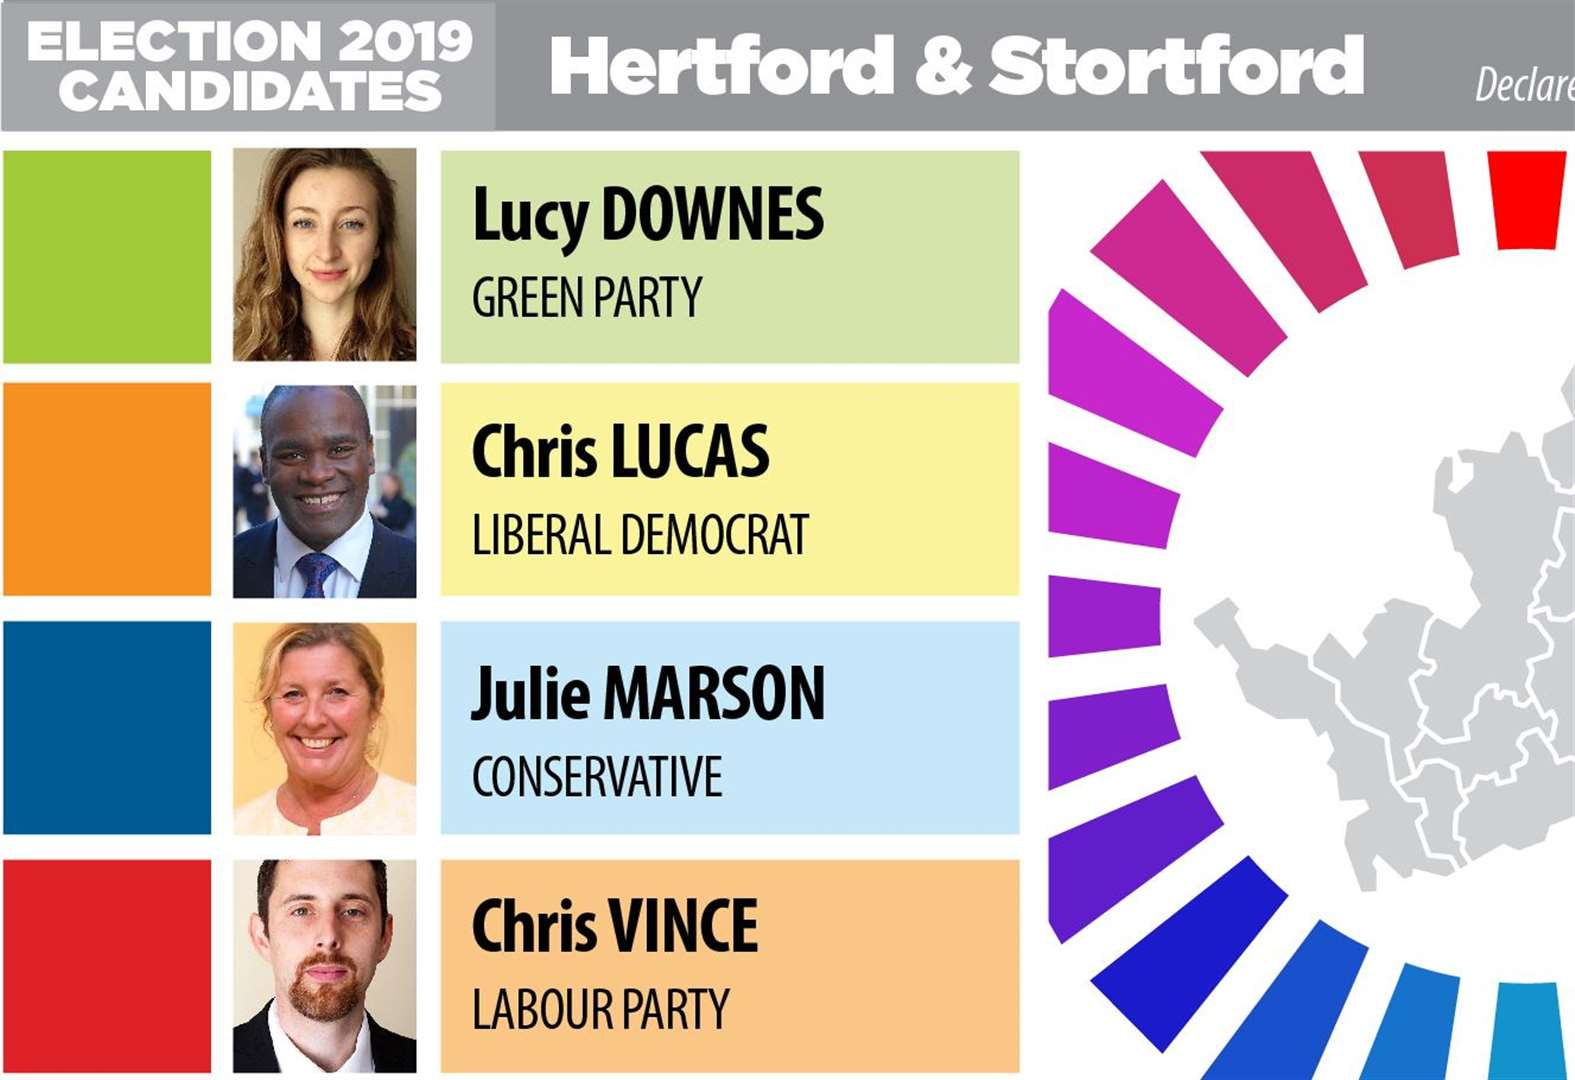 General Election: Hot-air balloonist bails out as Brexit Party candidate for Stortford